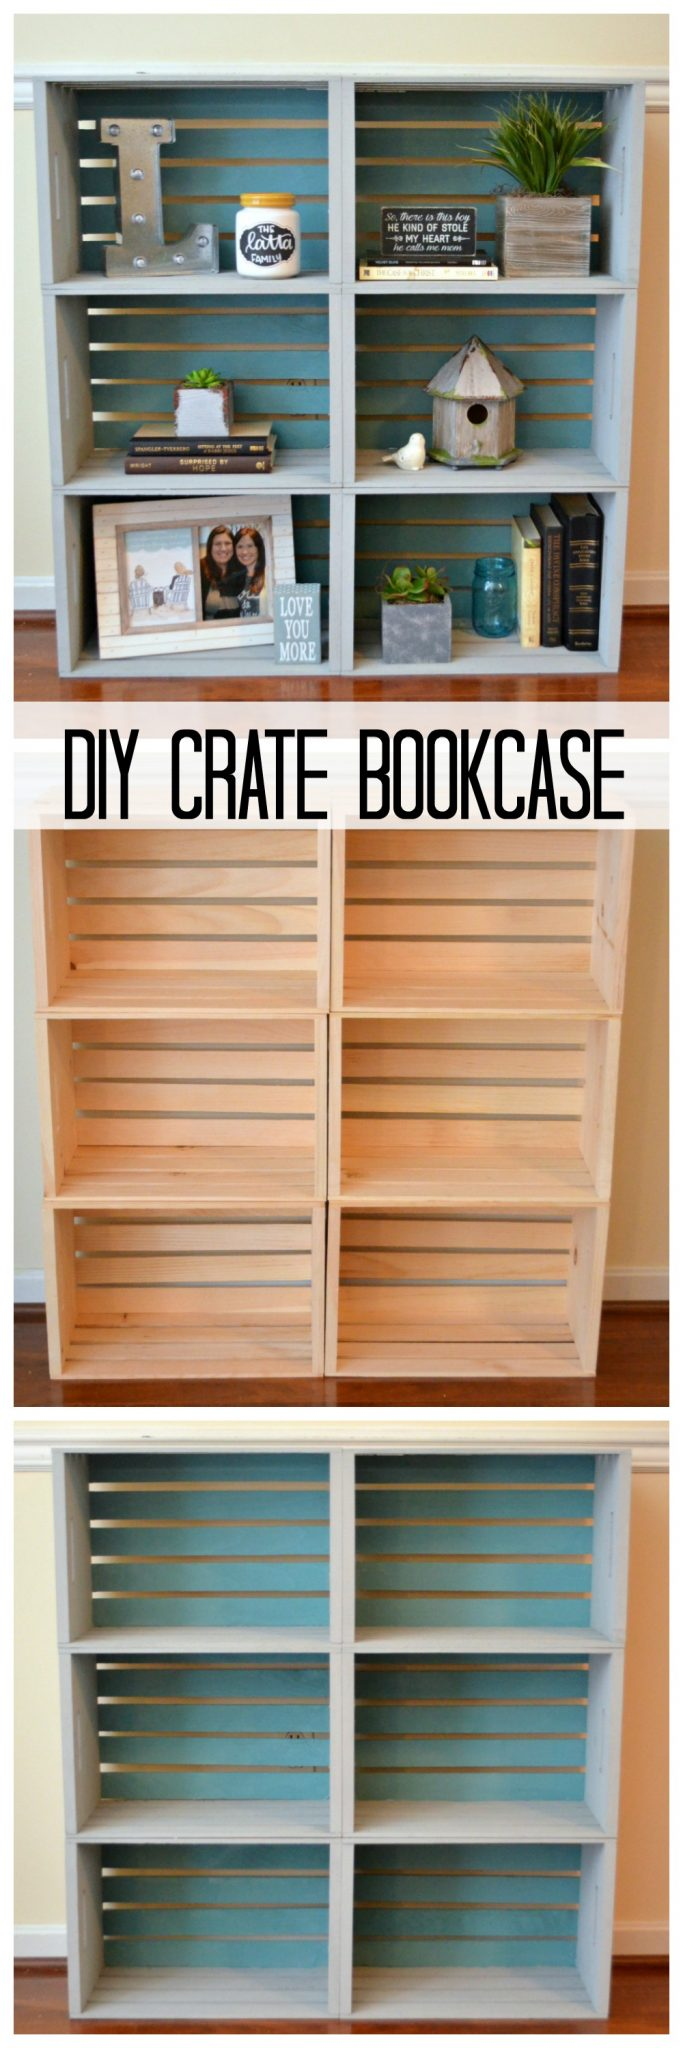 Super Easy Bookcase Made From Wood Crates.